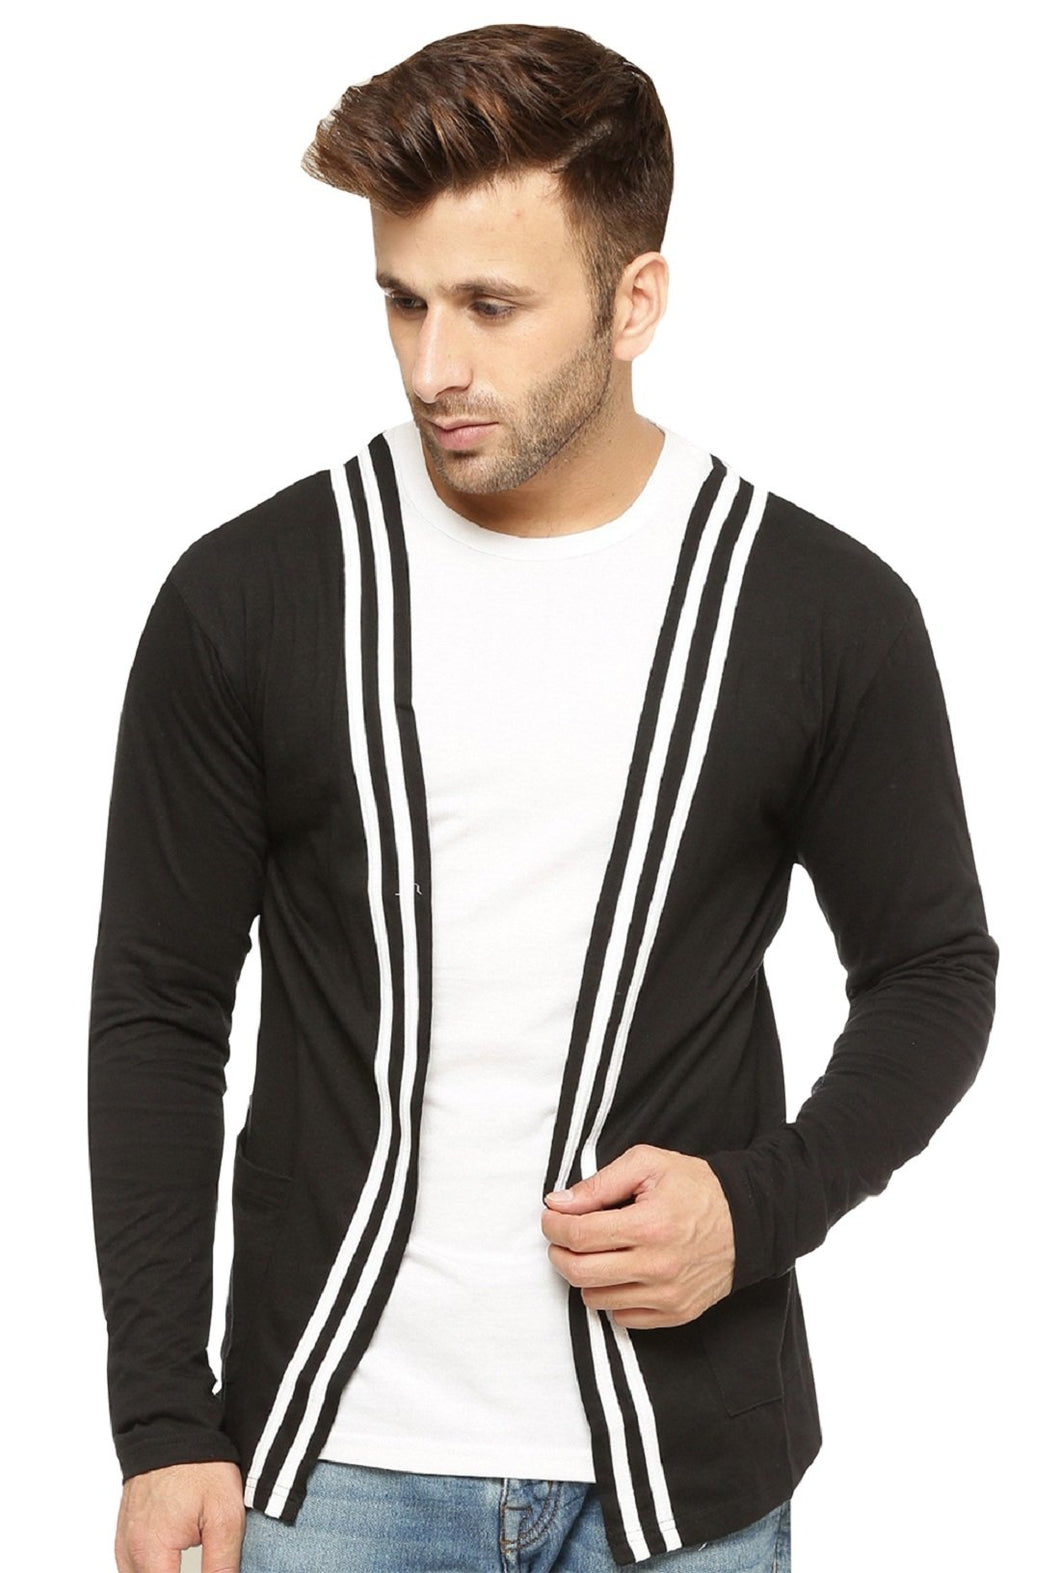 Black Open Long Cardigan Full Sleeve Shrug for Men